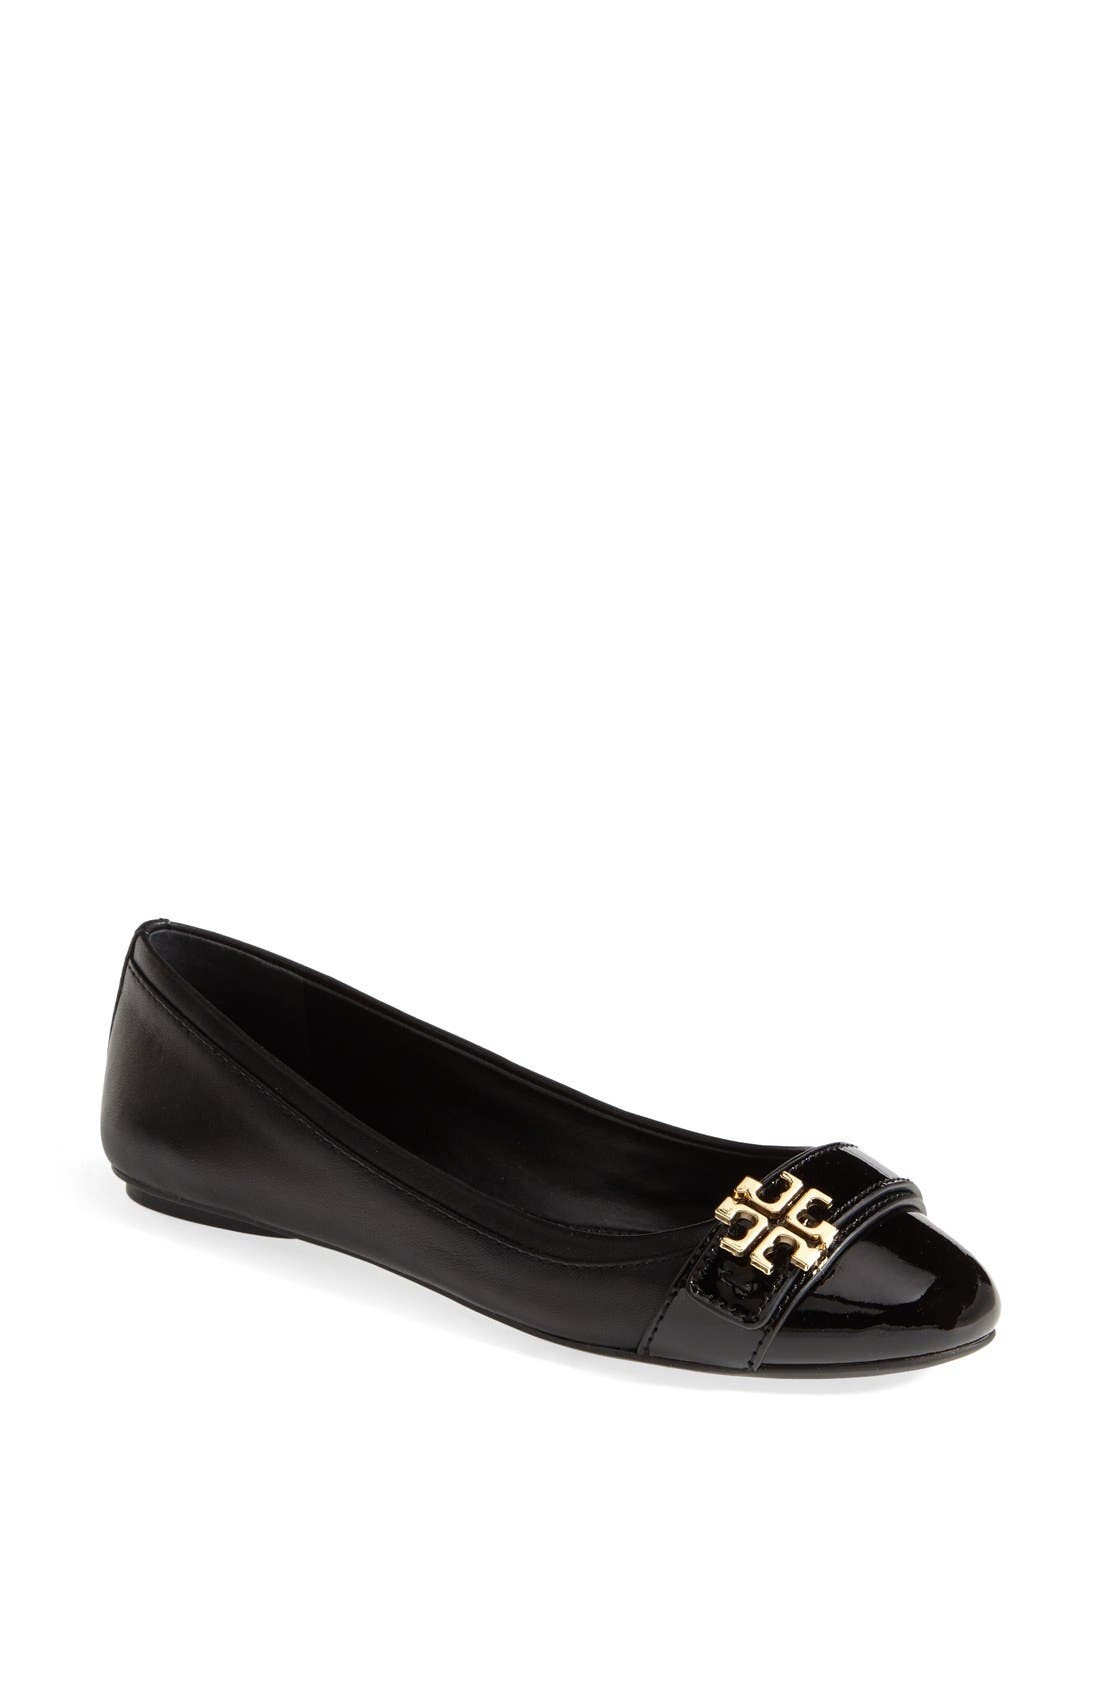 Alternate Image 1 Selected - Tory Burch 'Eloise' Ballet Flat (Women)